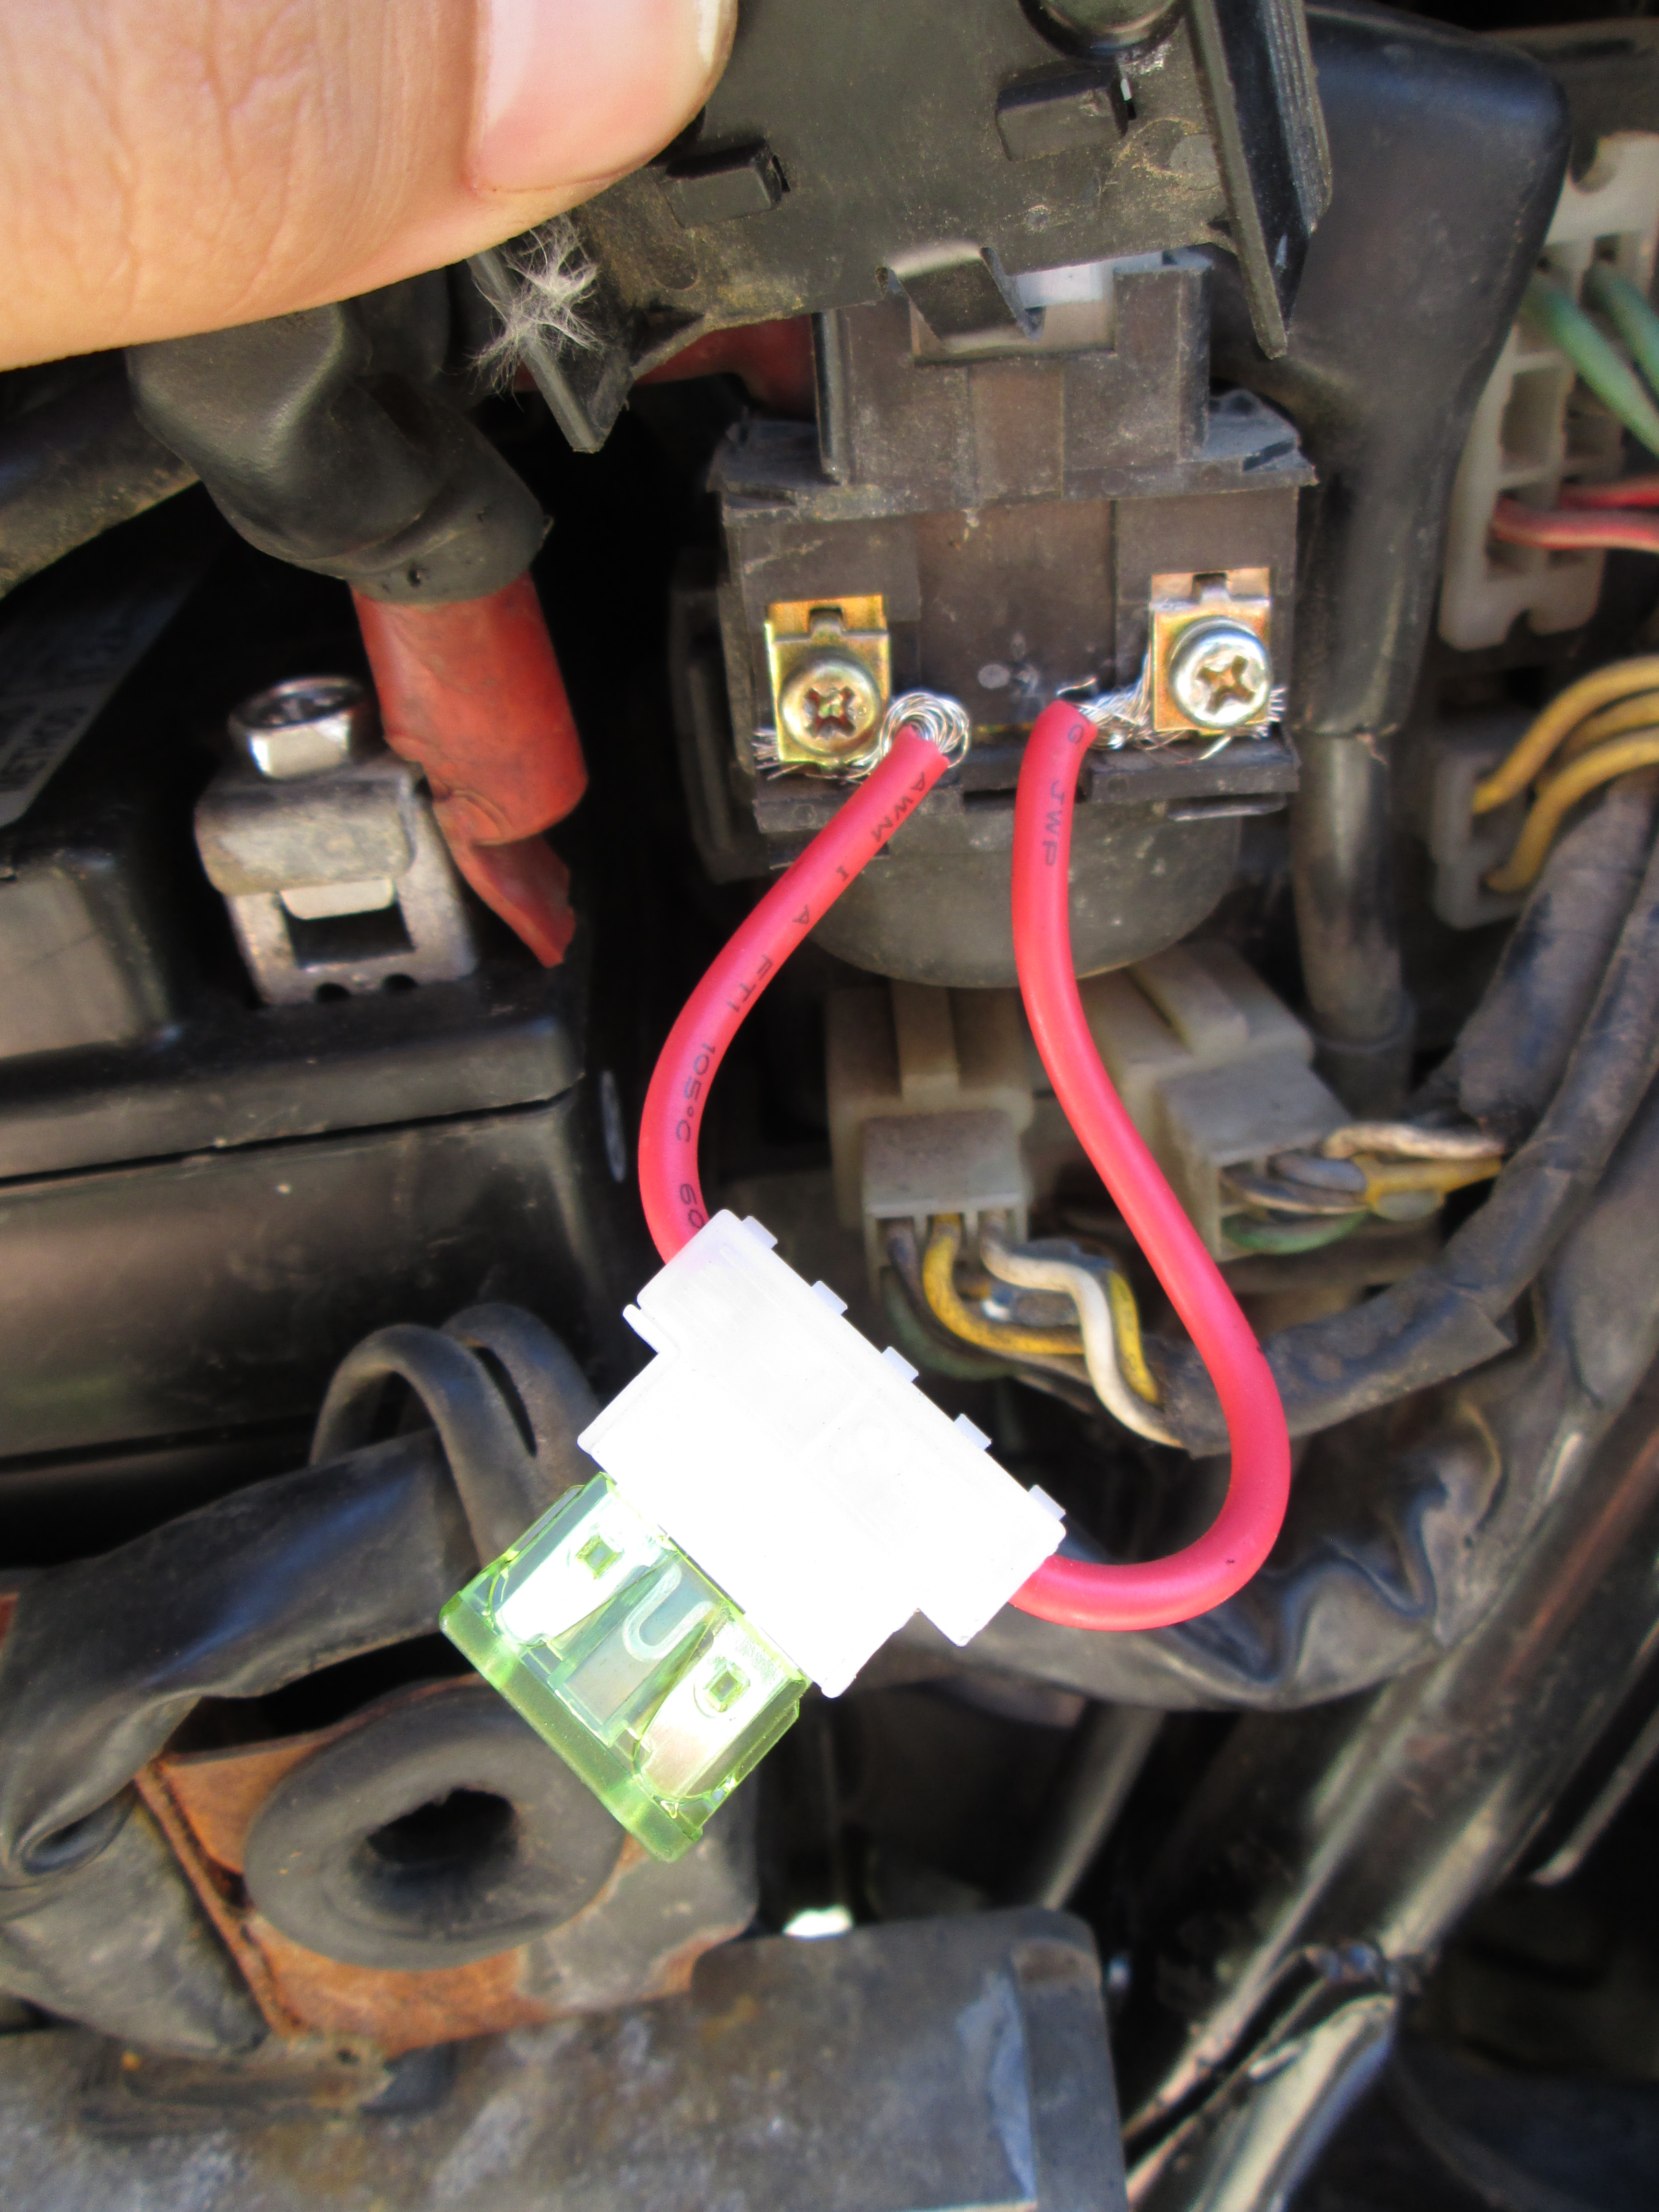 1983 Cx650c Fuse Box Replacement Free Download Heat Pump Cx650 Whats This For At